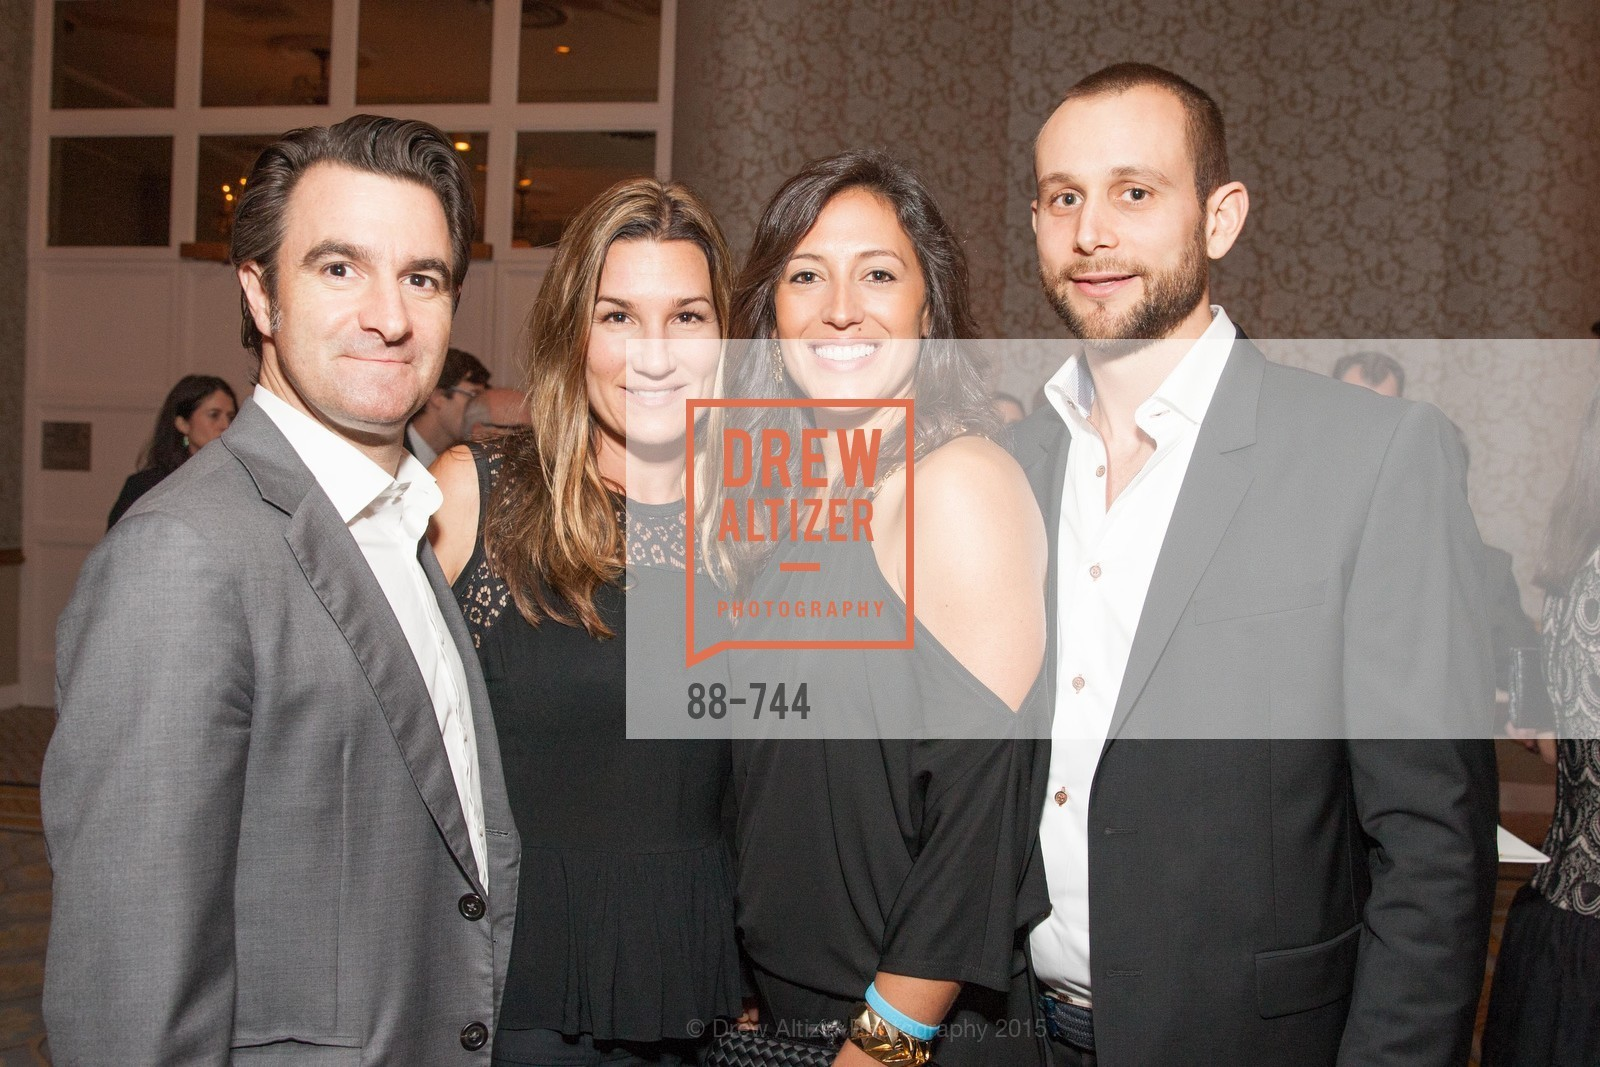 Quincy Smith, Kat Hontes, Kelly Flannery, Tim Kovak, Celebration of Launch of SHYP in Los Angeles, US, May 21st, 2015,Drew Altizer, Drew Altizer Photography, full-service agency, private events, San Francisco photographer, photographer california